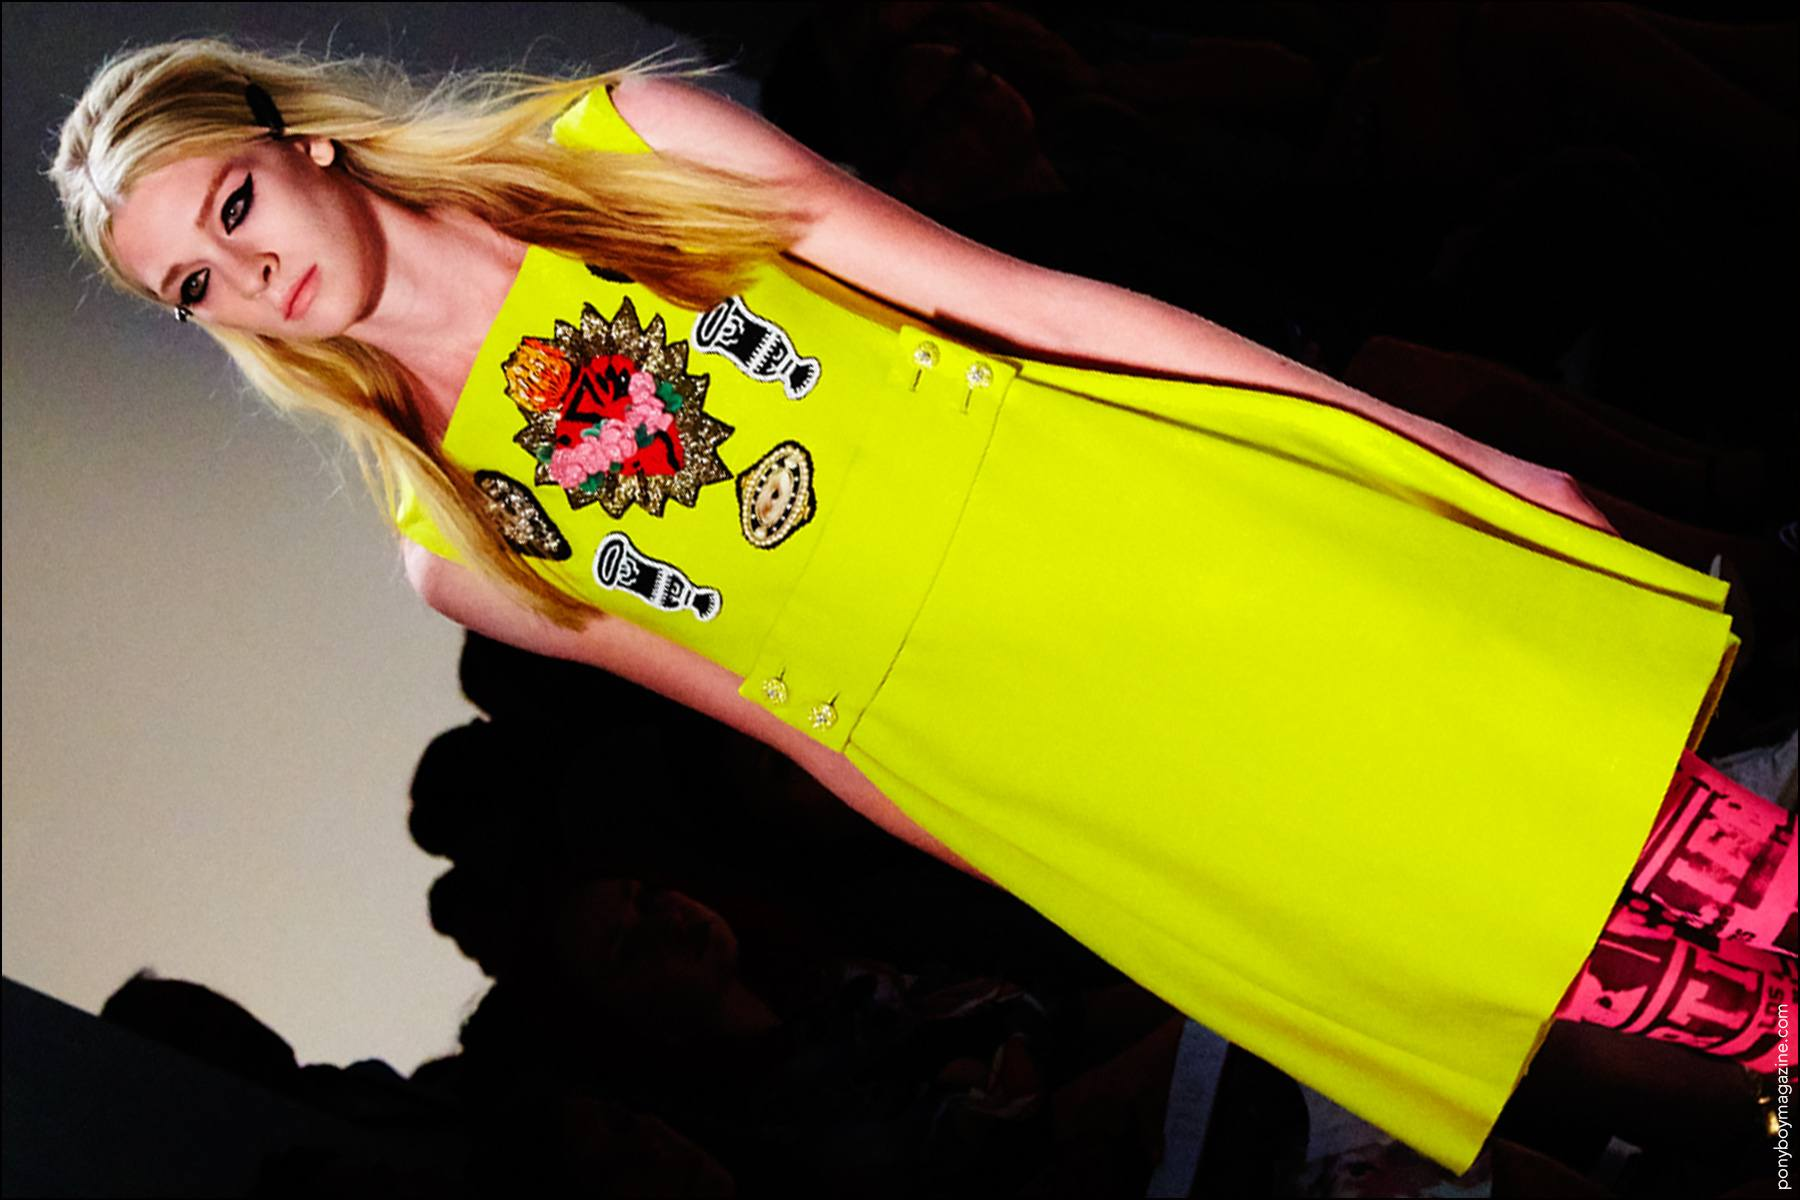 A day-glo shift on the runway at Libertine S/S17 show, on model Allison Millar. Photography by Alexander Thompson for Ponyboy magazine NY.